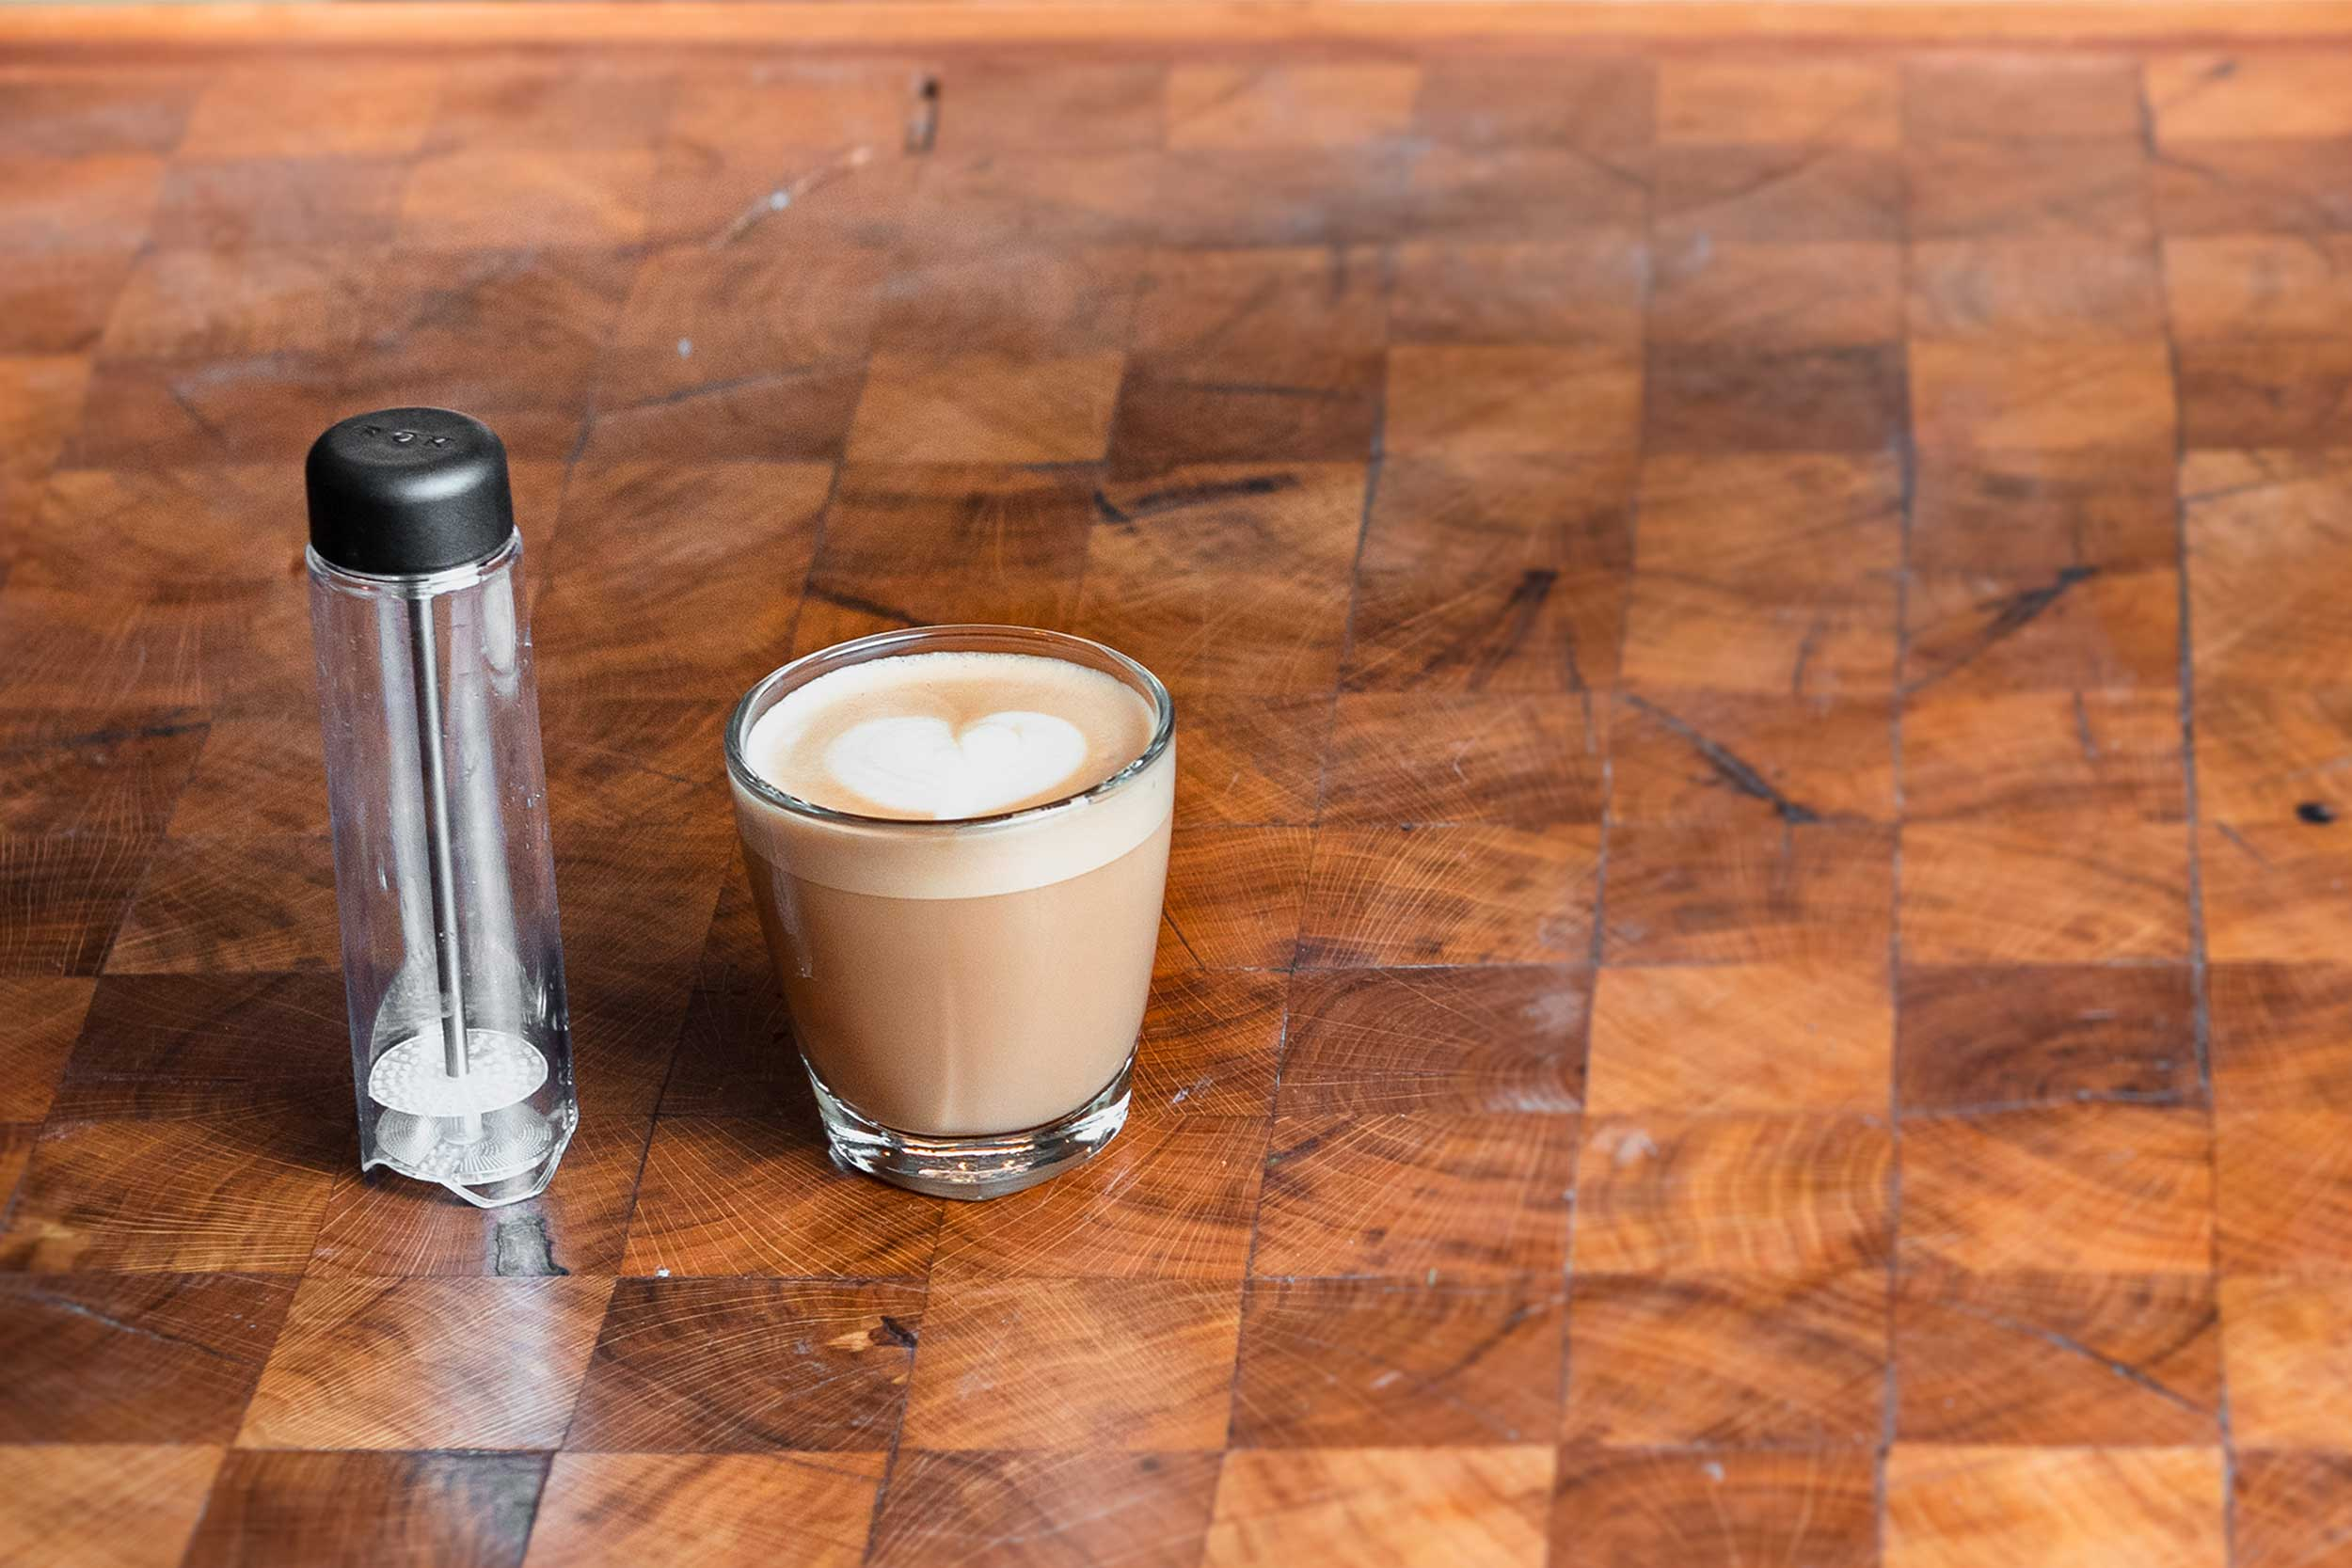 ROK manual milk frother next to coffee with foamed milk on wooden countertop